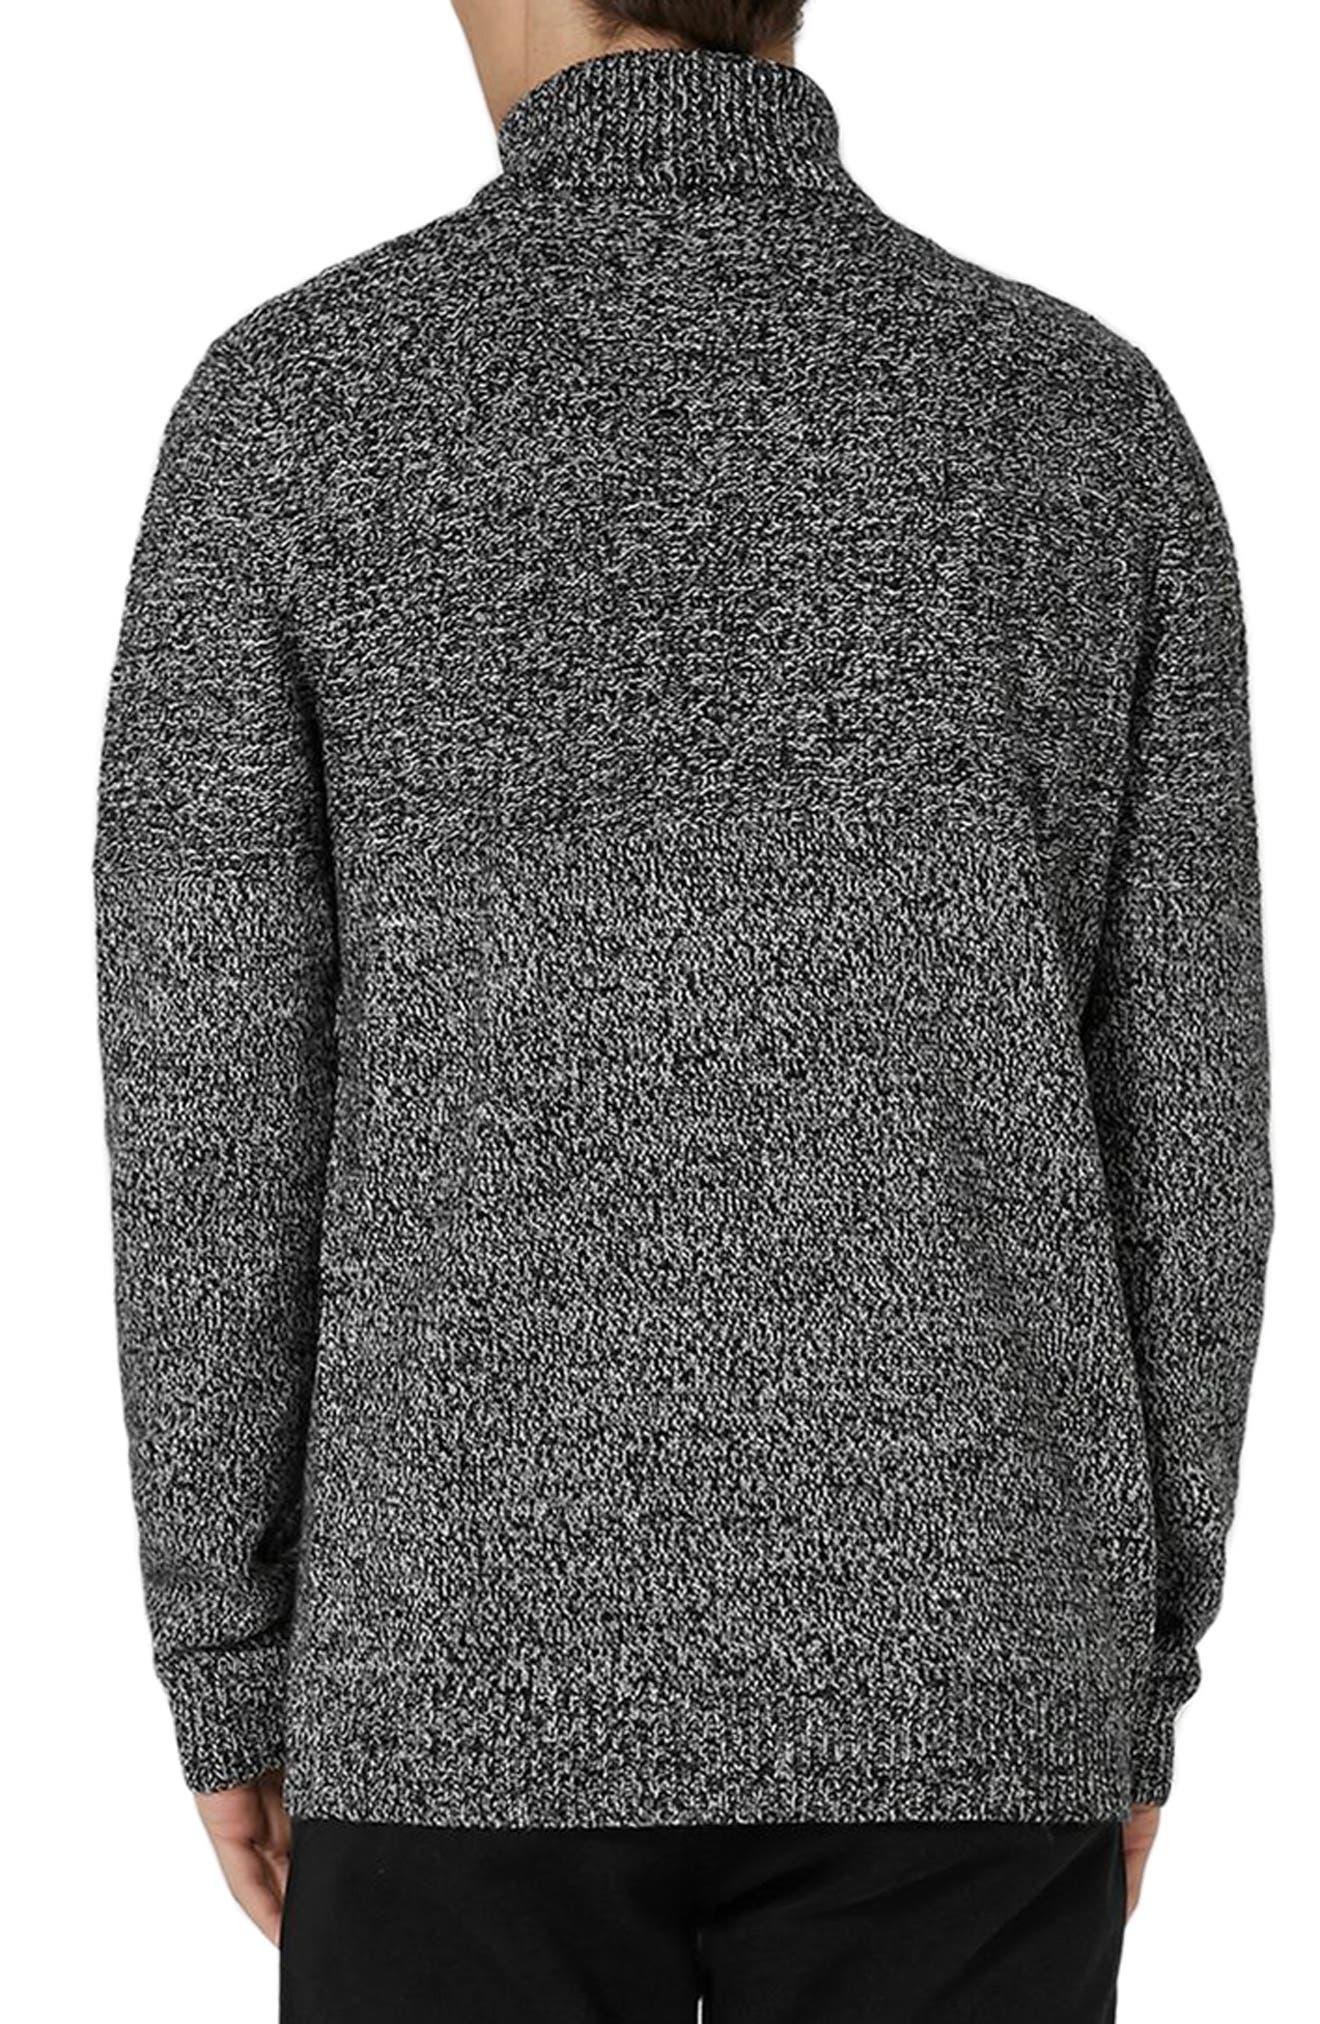 Twist Roll Neck Sweater,                             Alternate thumbnail 2, color,